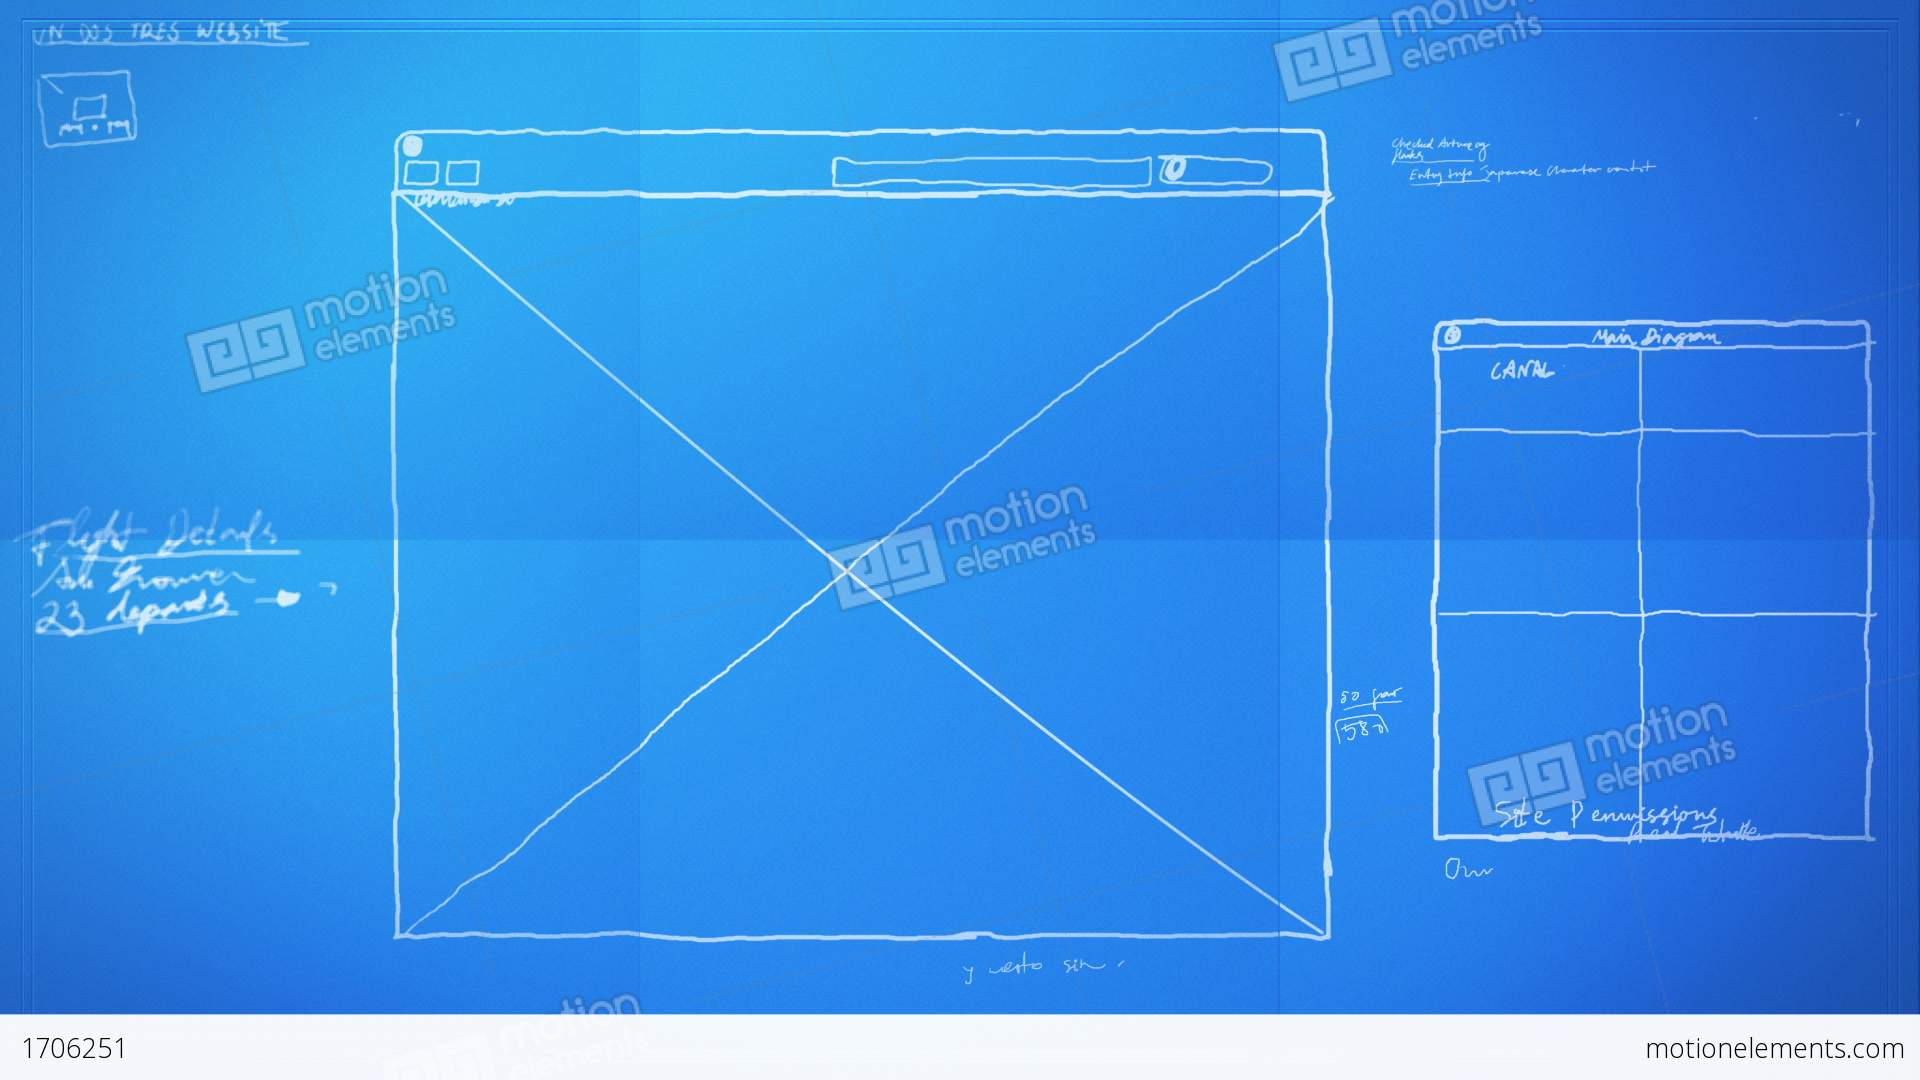 Graphic design layout process time lapse blueprint stock animation graphic design layout process time lapse blueprint stock video footage malvernweather Gallery